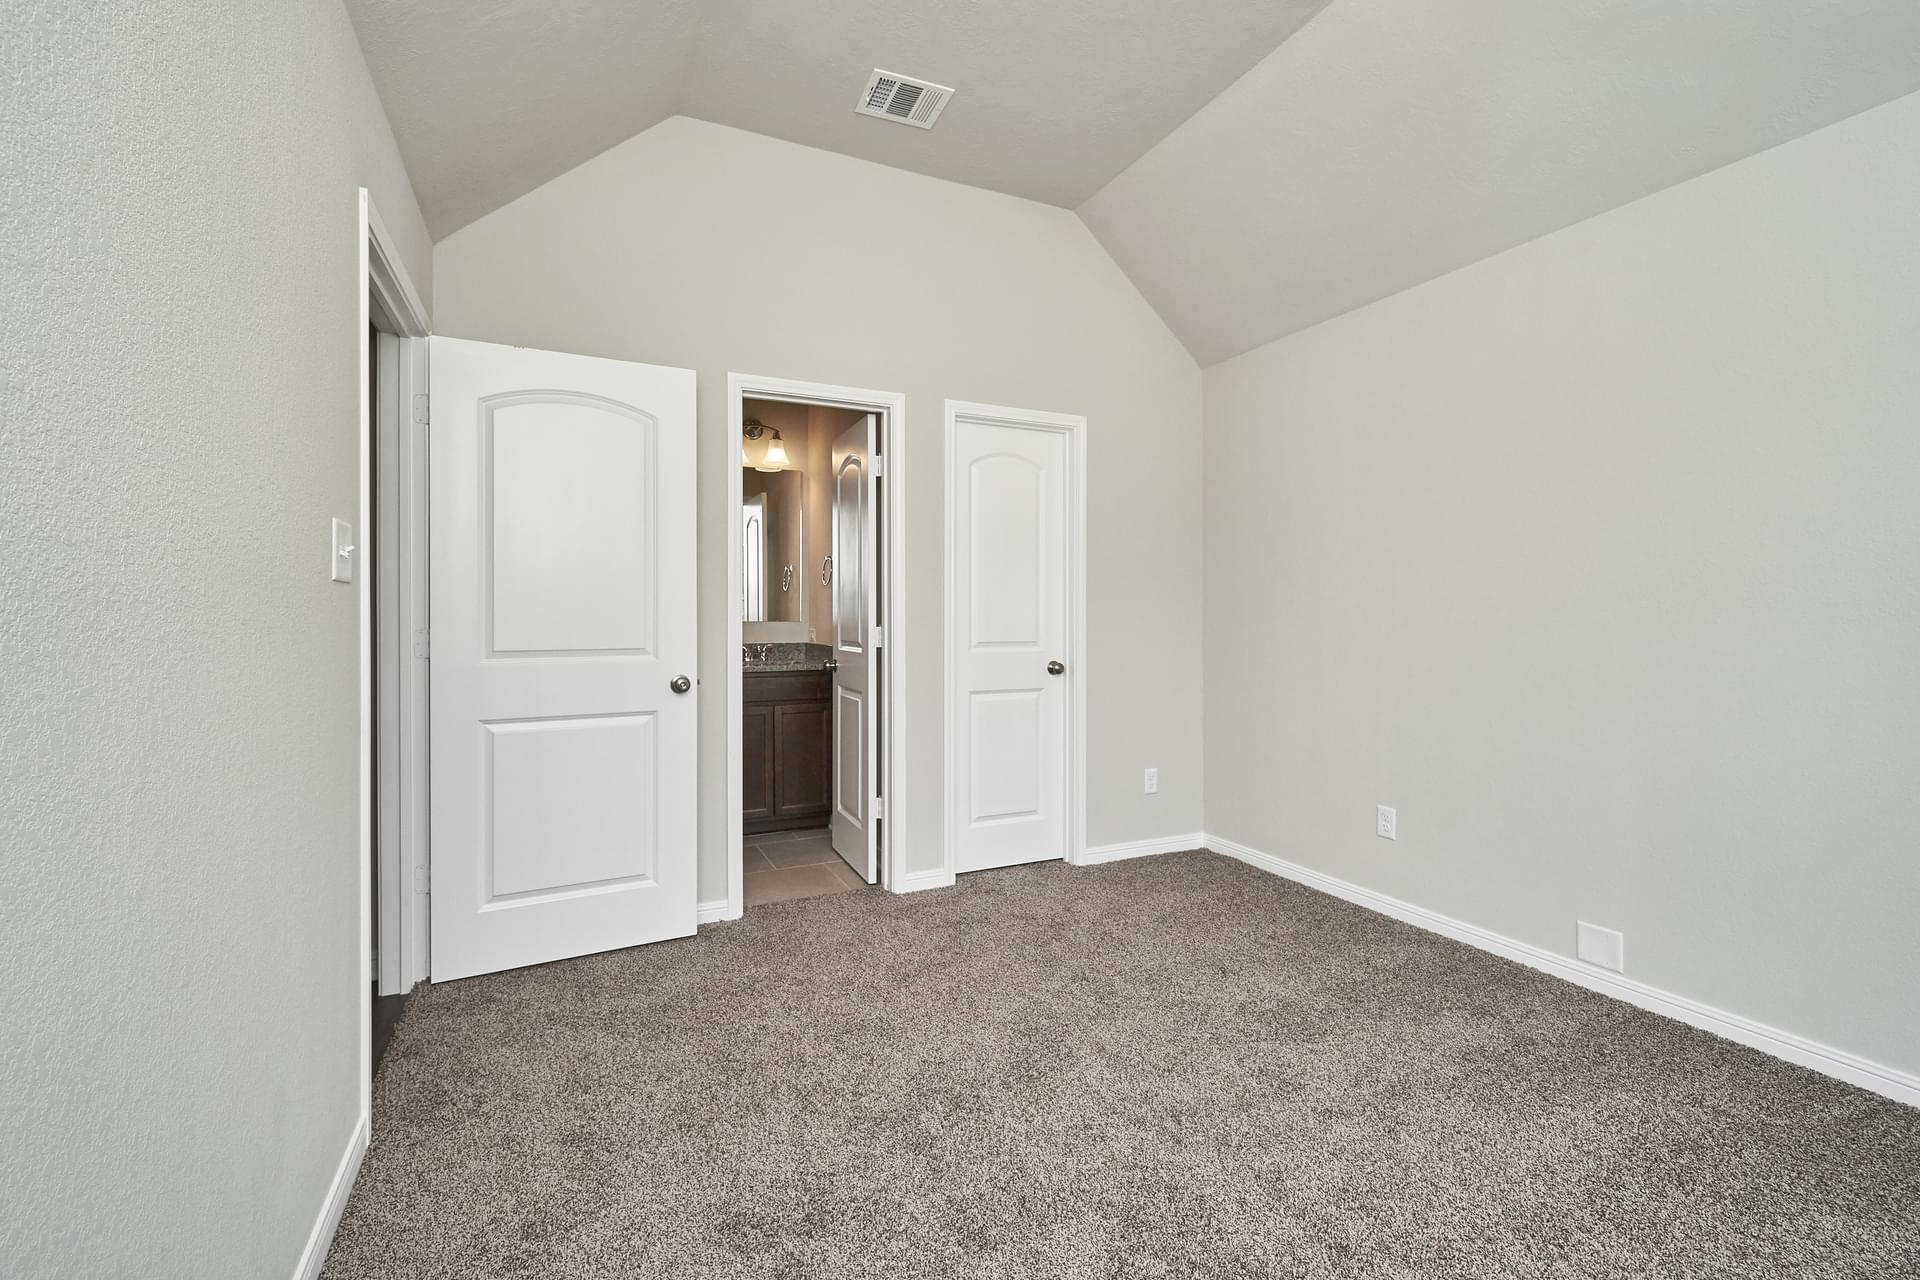 4br New Home in Bryan, TX